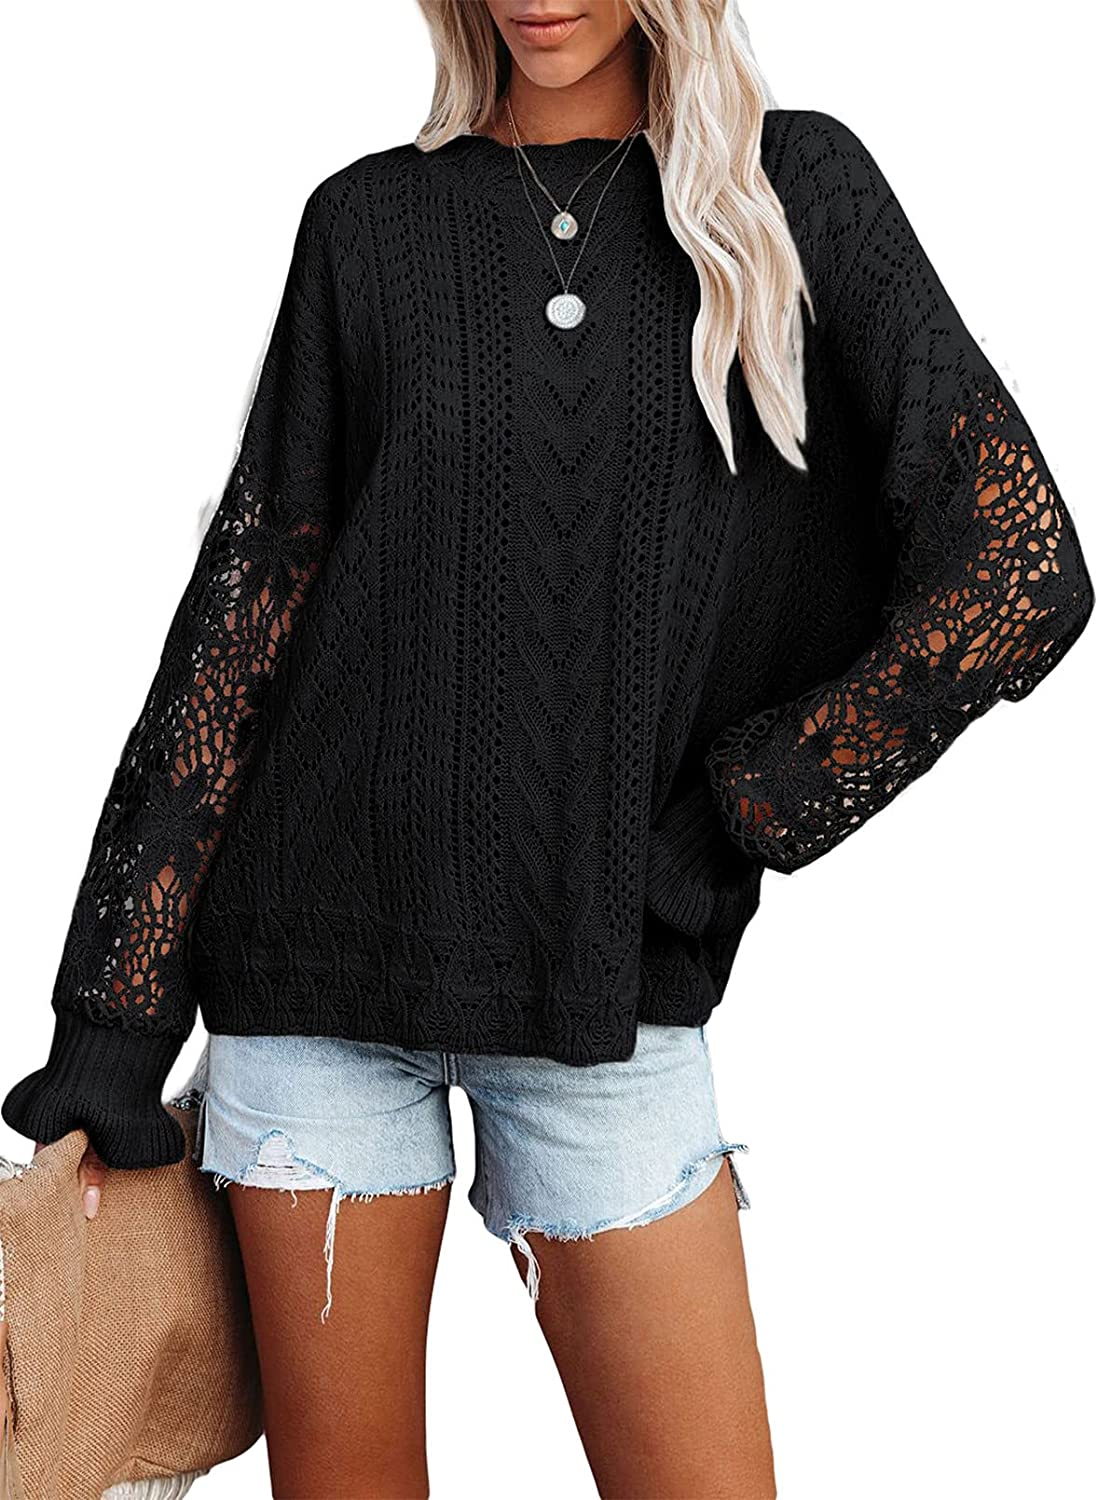 Bdcoco Womens Long Sleeve Lace Crochet Knit Sweaters Crewneck Hollow Out Pullover Jumper Tops